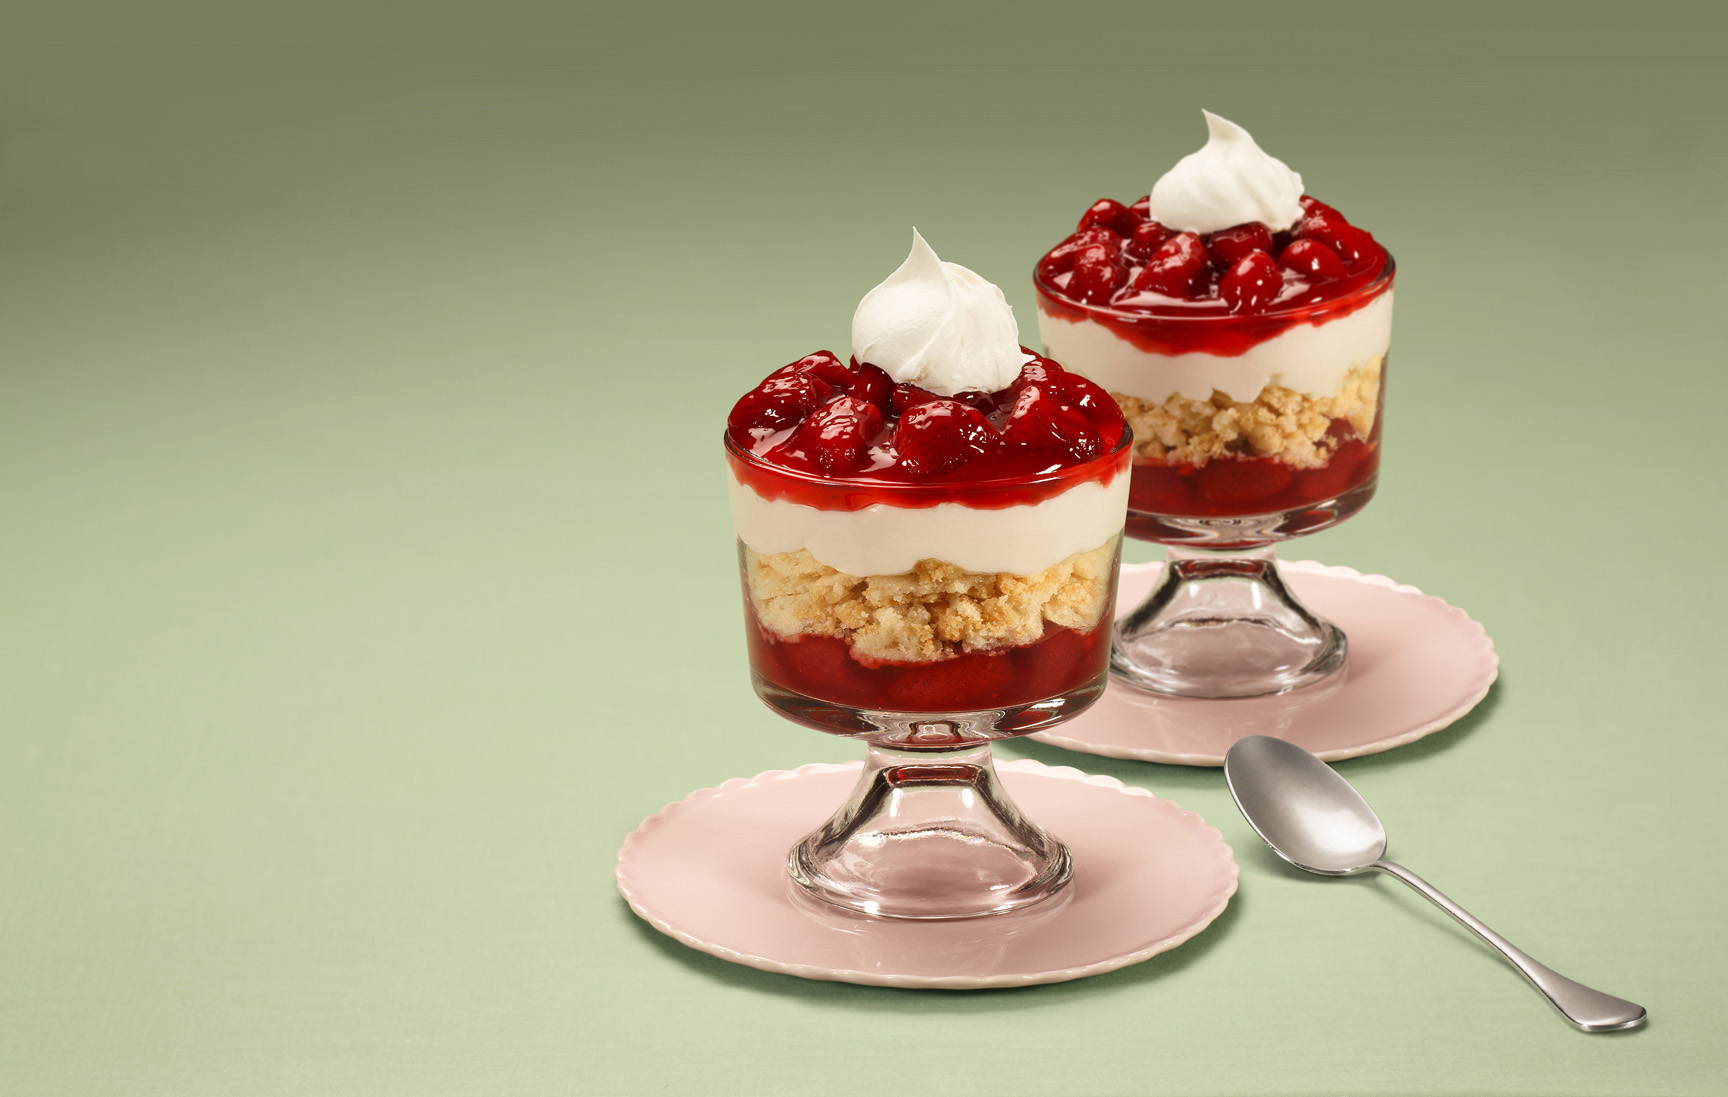 Lucky Leaf Premium Pie Filling Makes Summer Entertaining Easy With Customizable Desserts